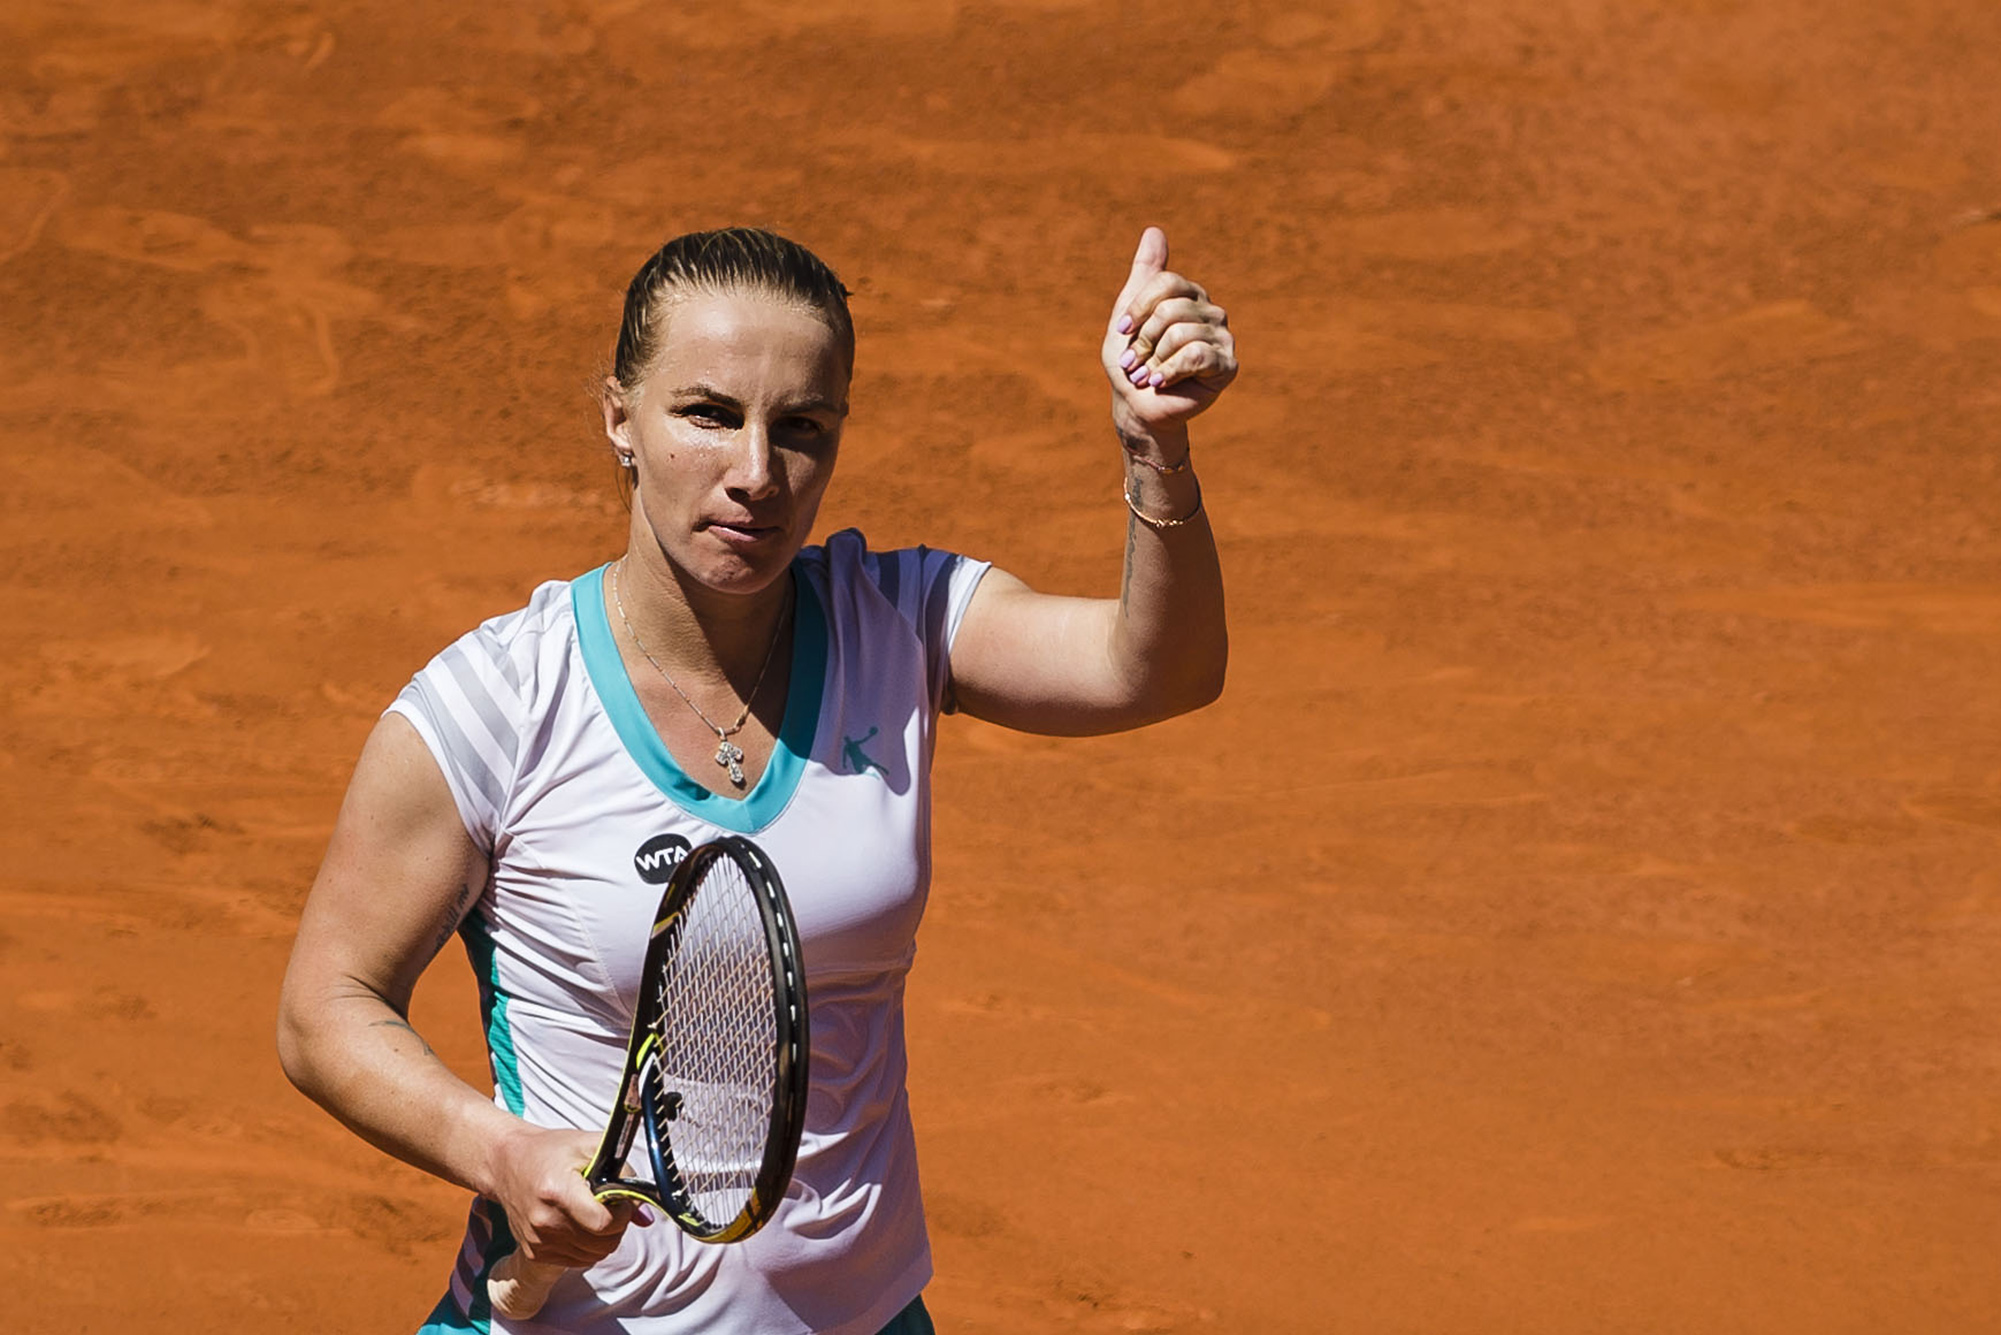 Svetlana Kuznetsova from Russia celebrates after defeating Maria Sharapova from Russia after their Madrid Open tennis tournament match in Madrid, Spain, Friday, May 8, 2015. (AP Photo/Daniel Ochoa de Olza)